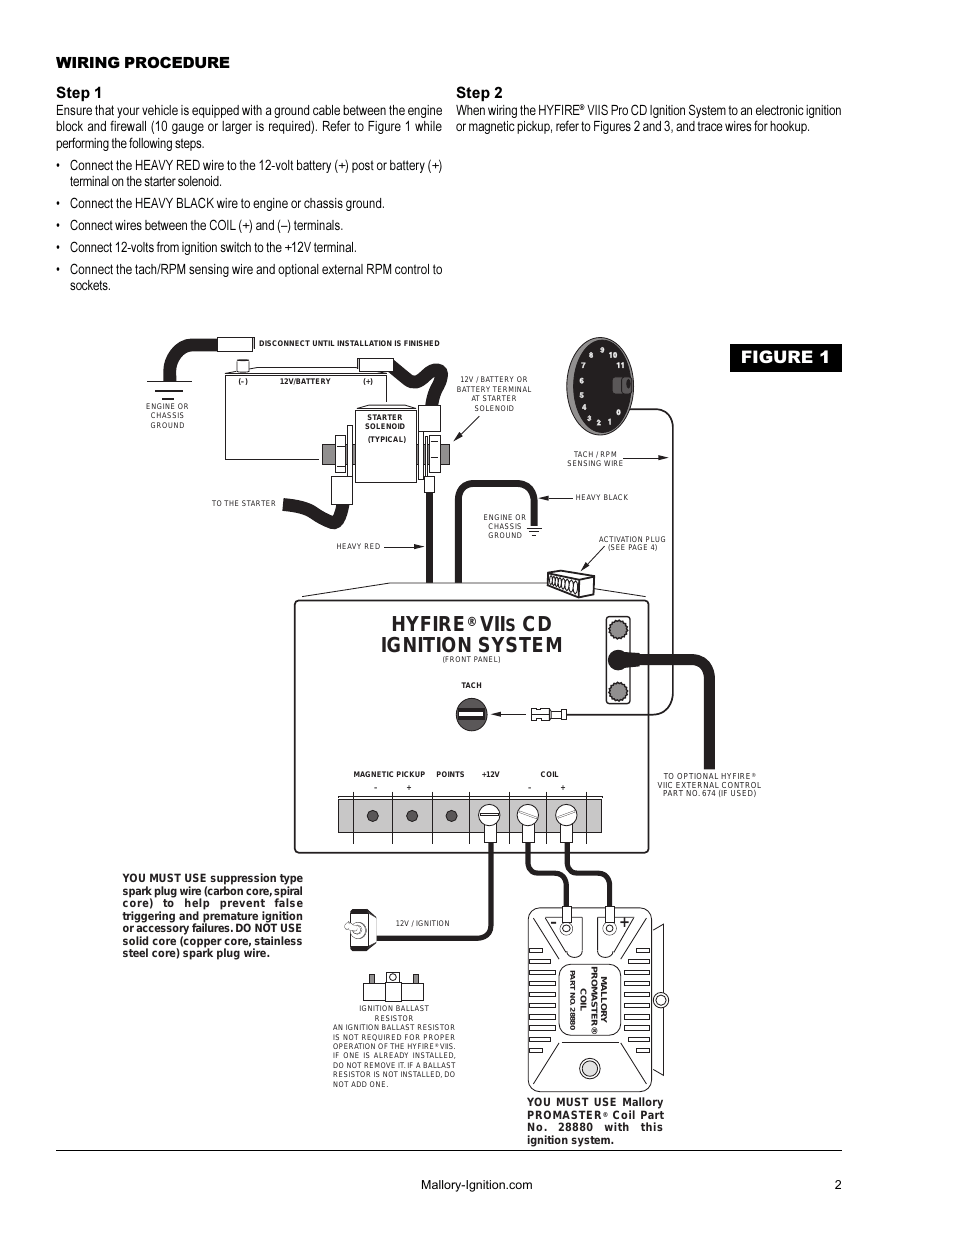 OR_7730] Mallory Hyfire Wiring Diagram On Vw Coil Wiring Diagram Mallory  Free DiagramStic Barba Rele Mohammedshrine Librar Wiring 101